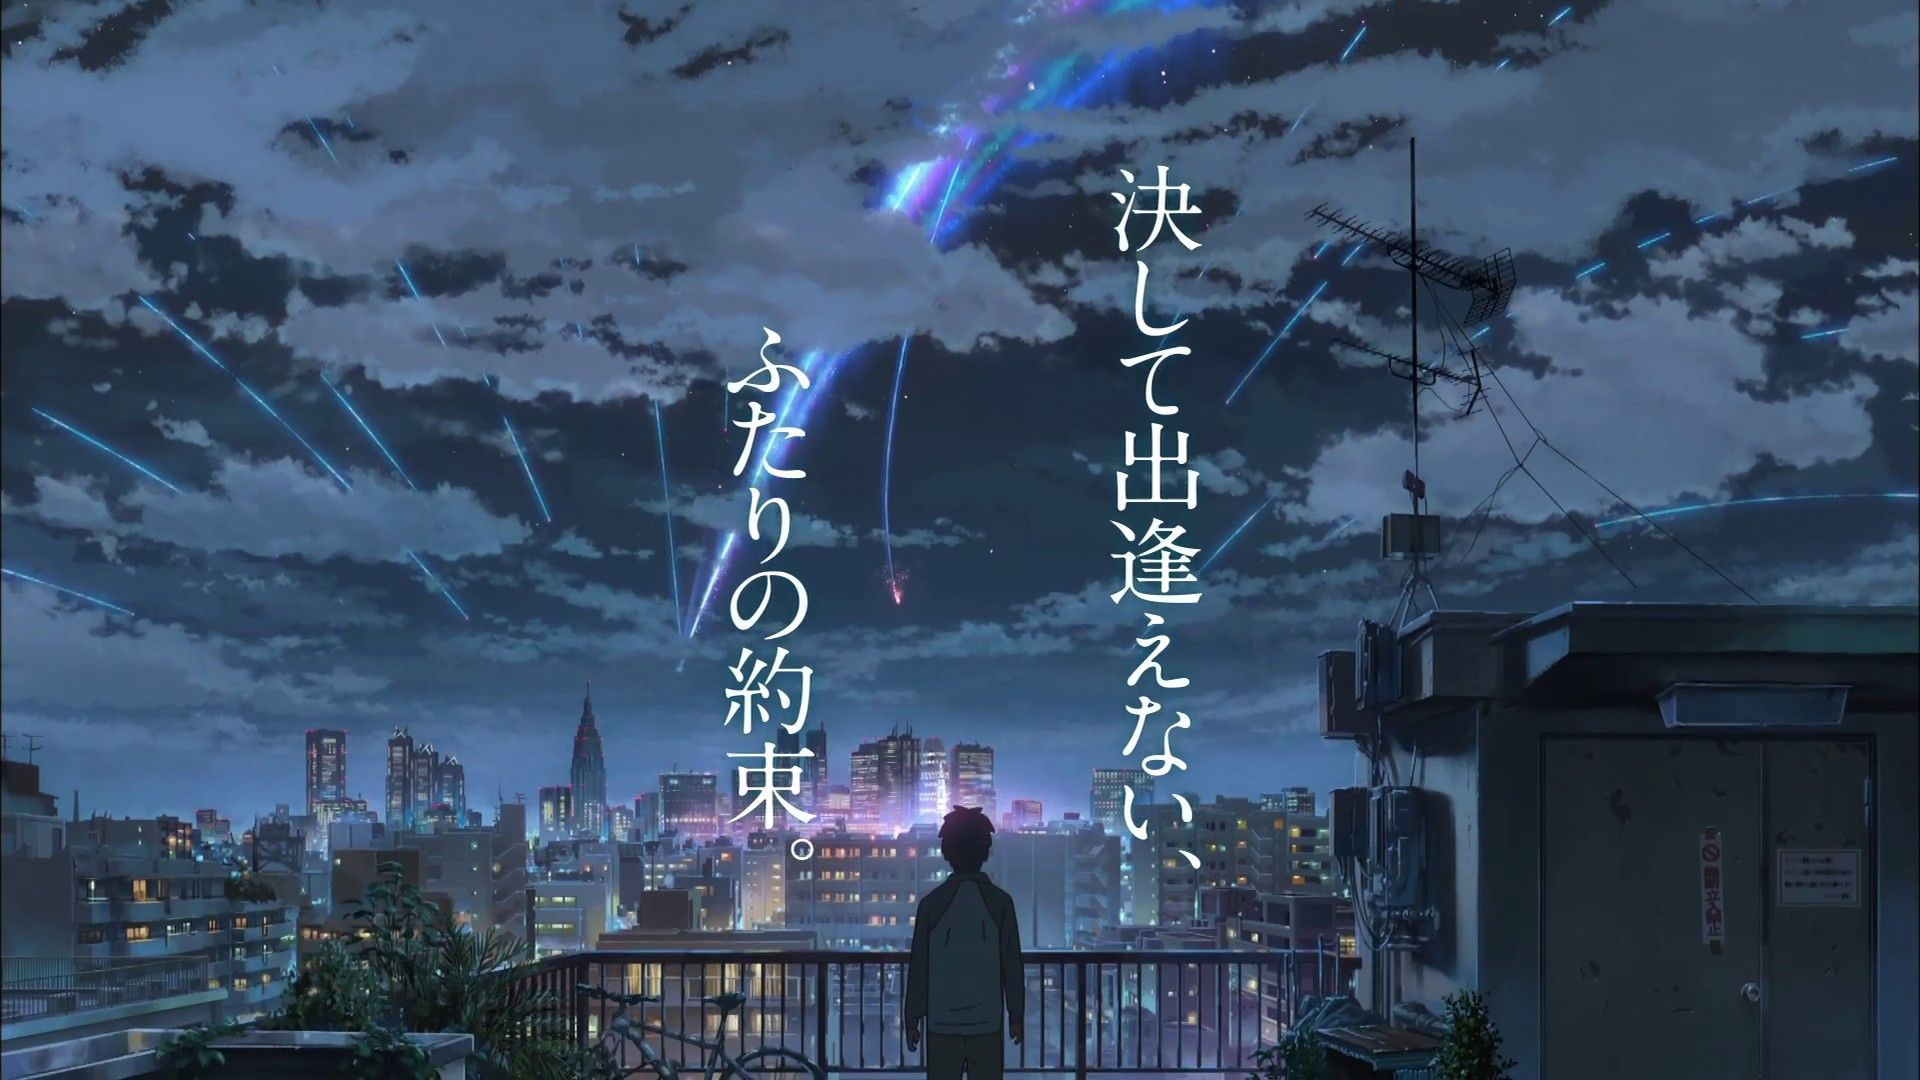 kimi no na wa wallpaper 1920x1080 4k Cenário anime